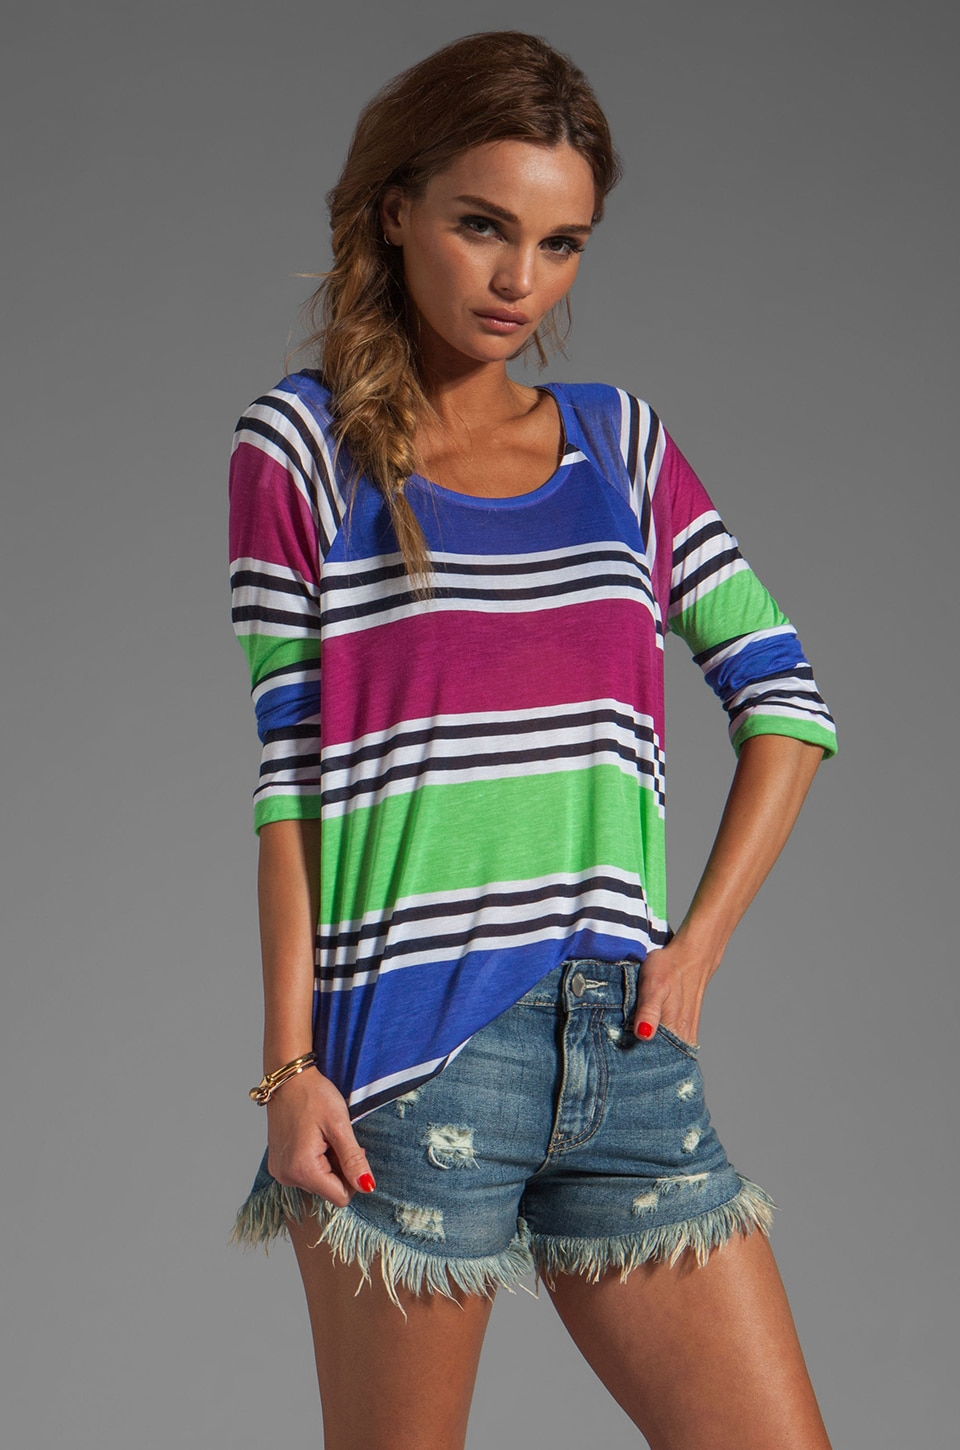 Splendid Cabana Stripe Top in Plum